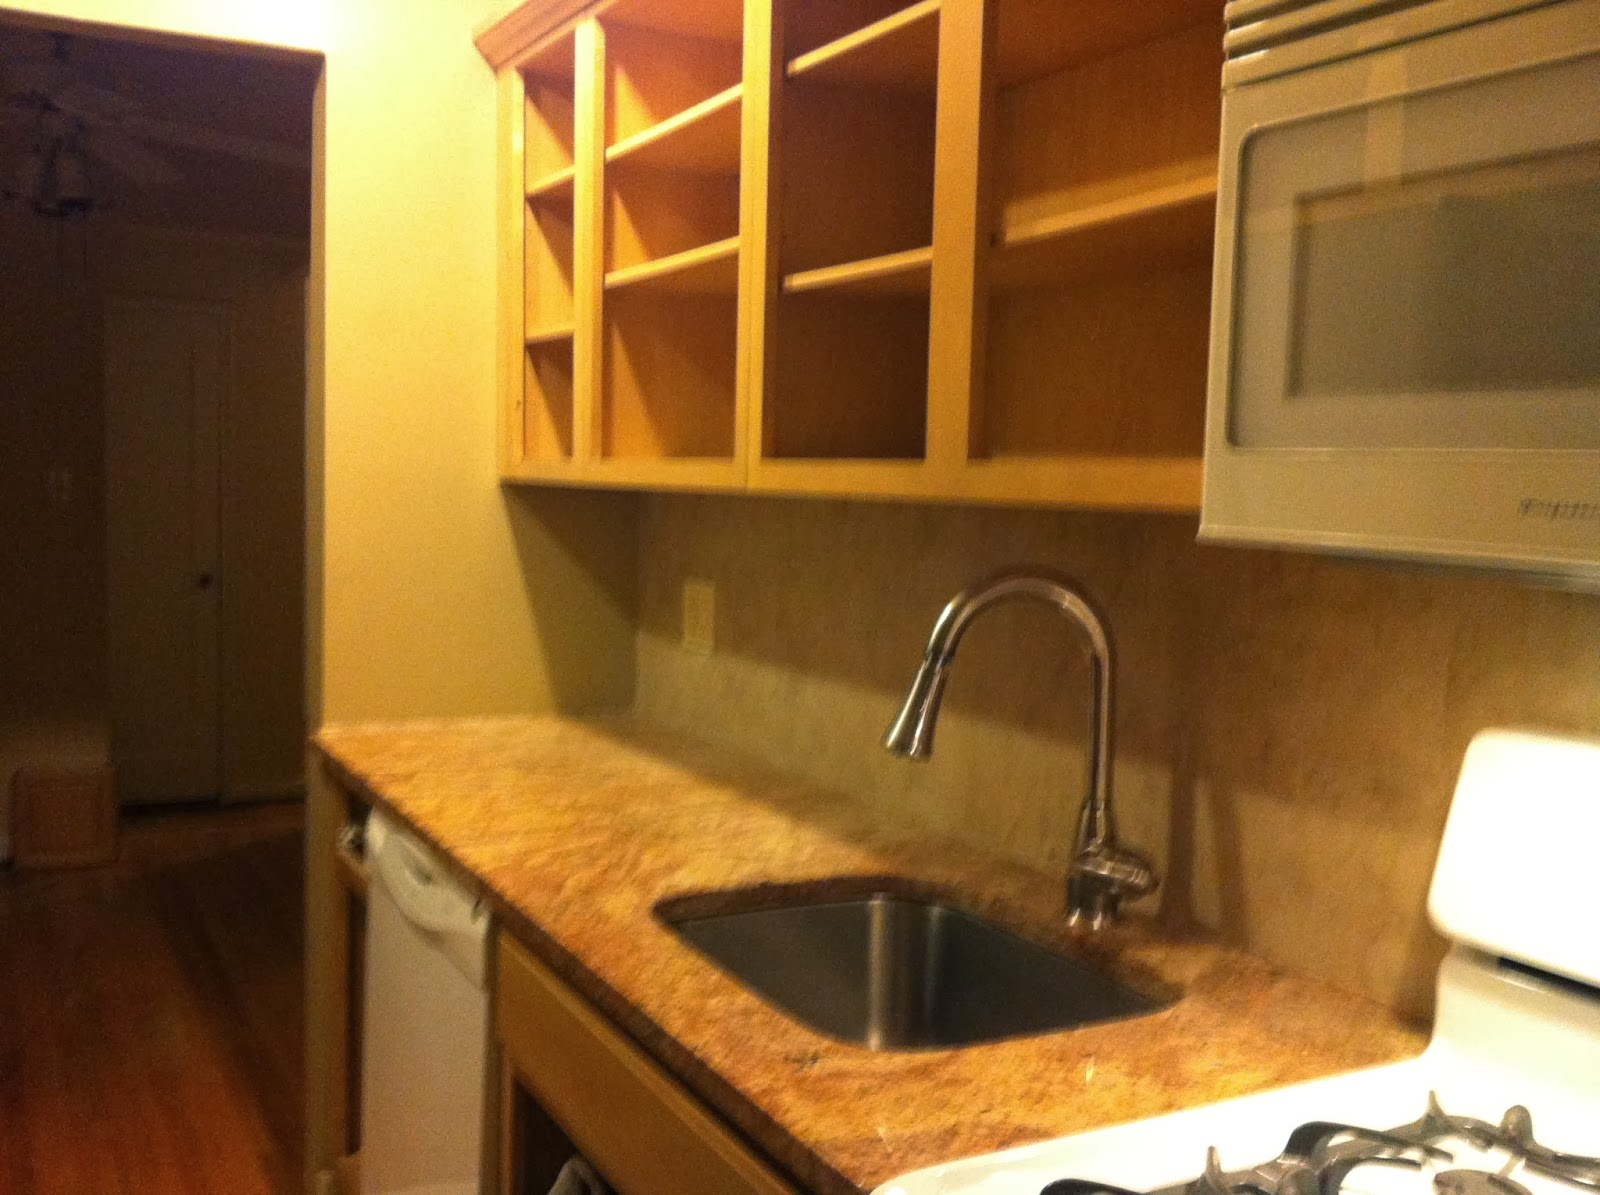 How To Paint Kitchen Cabinets: Step By Step